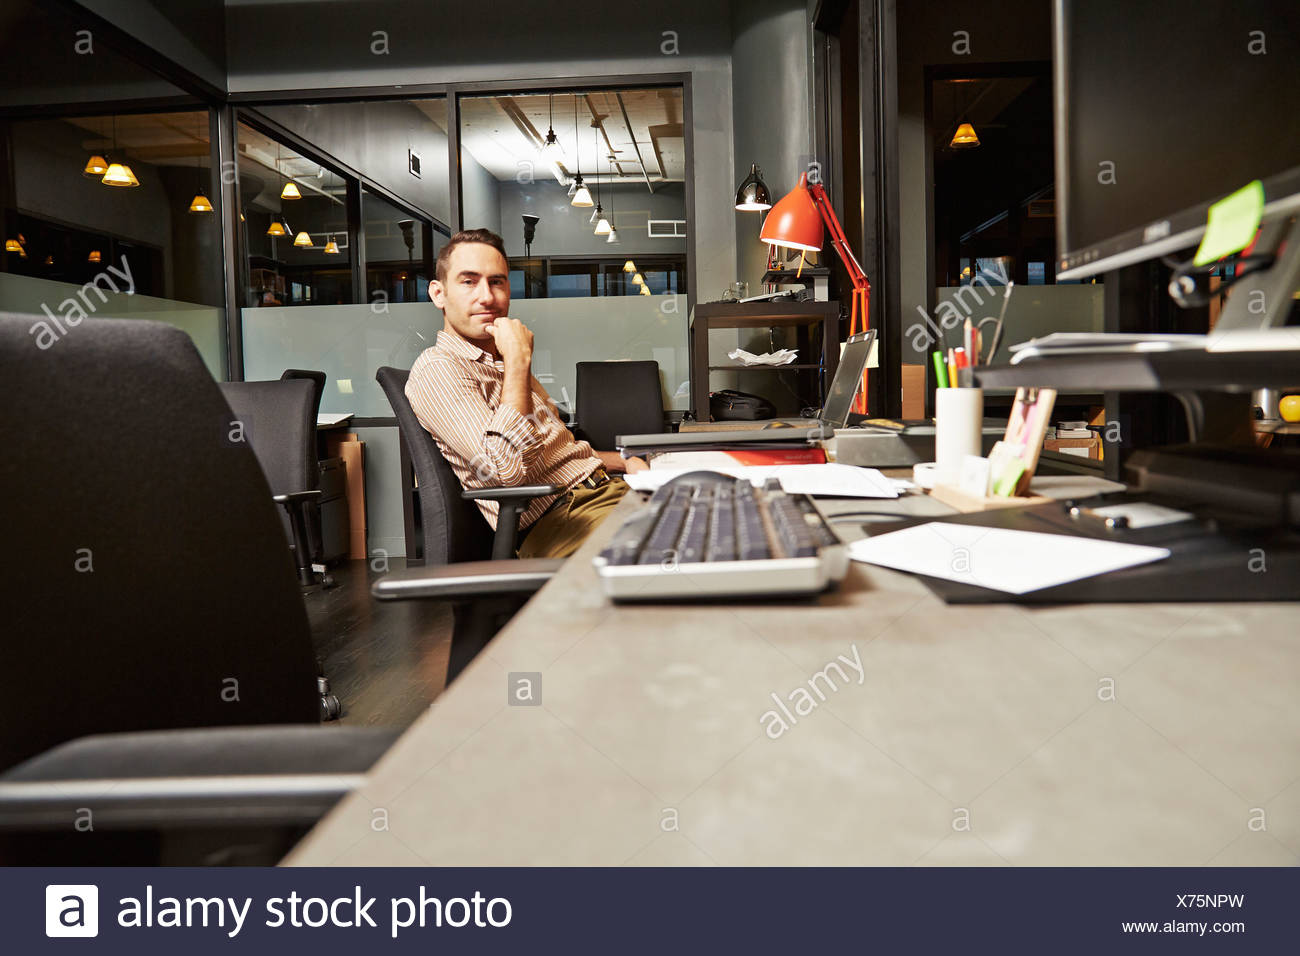 Portrait of businessman sitting at desk in office - Stock Image